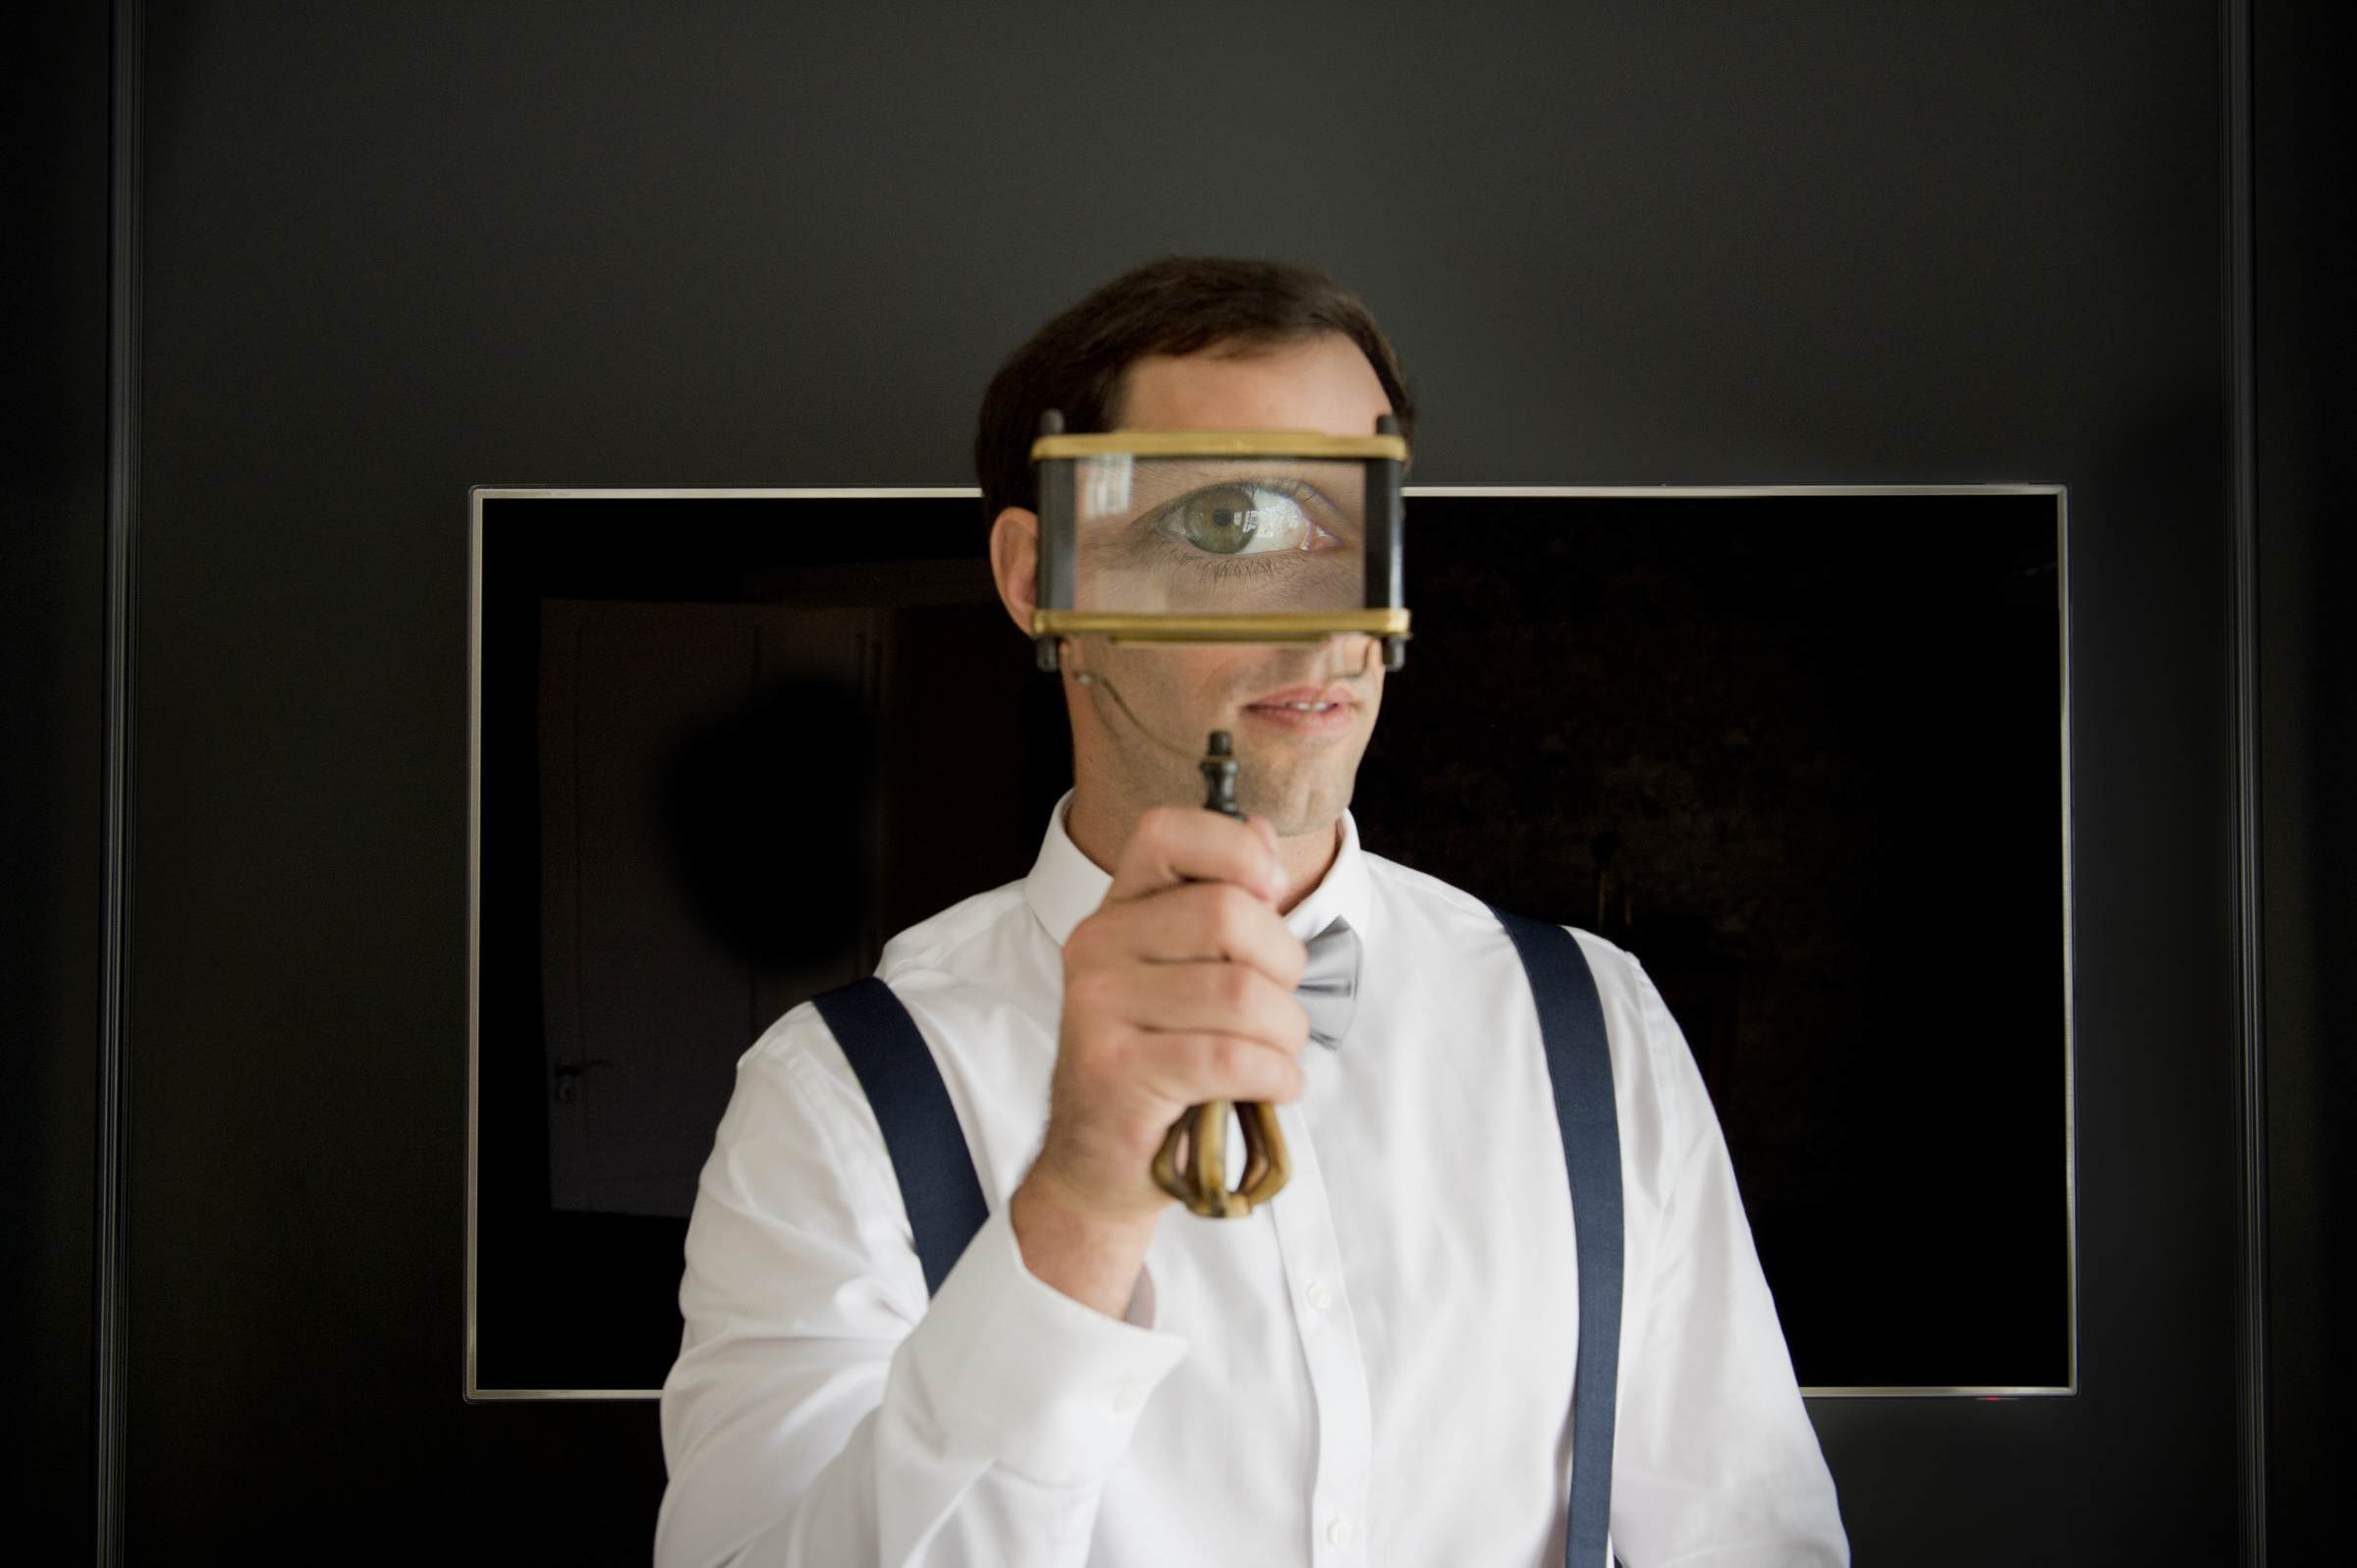 Groom looks with one eye through magnifying glass - photo by Jacki Bruniquel